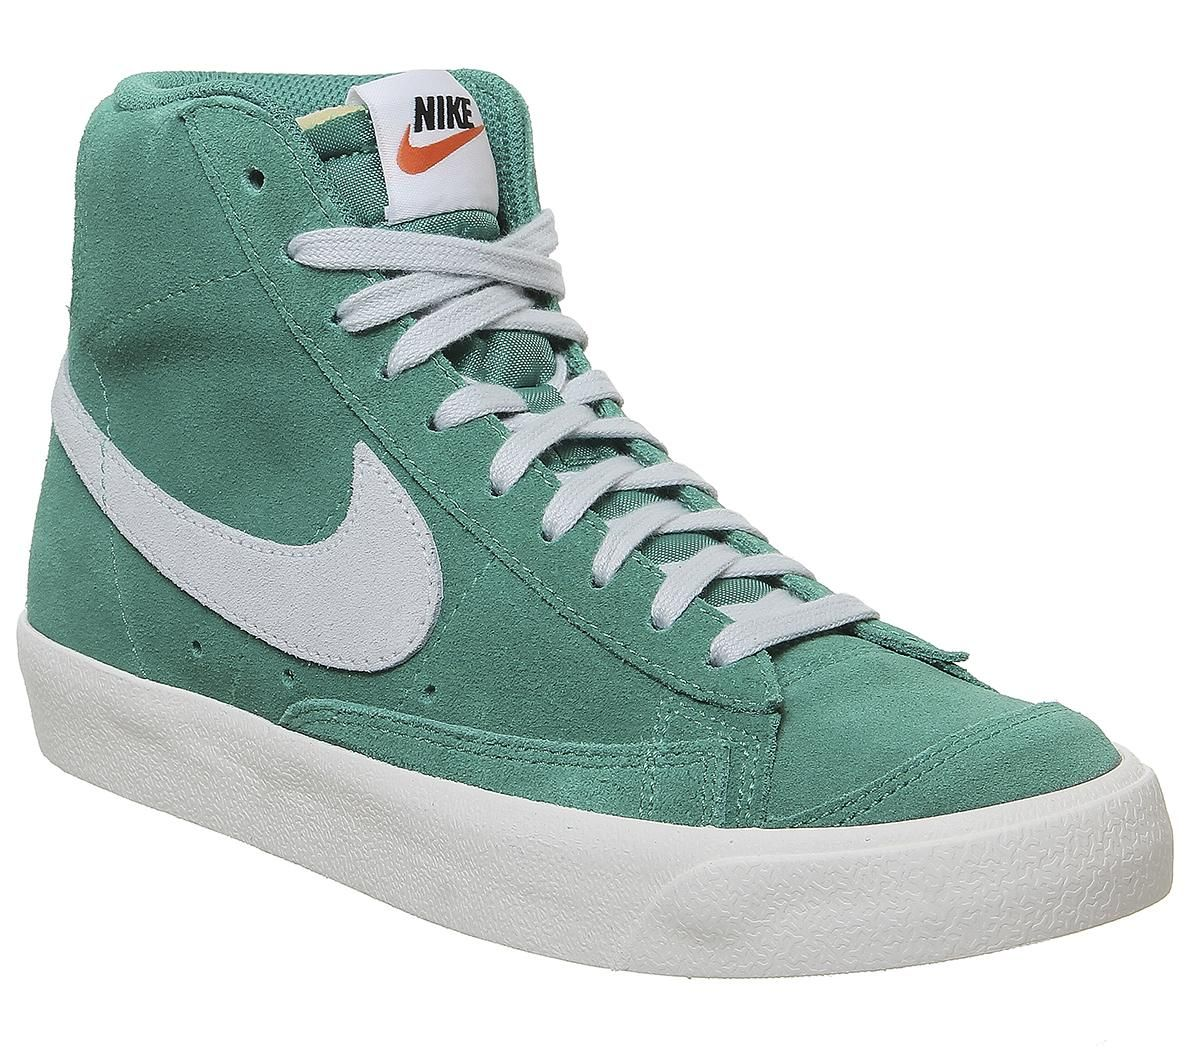 Nike Blazer Mid 77 Trainers Neptune Green Pure Platinum Sail Unisex Sports Green Nike Shoes Nike Volleyball Shoes Sneakers Fashion